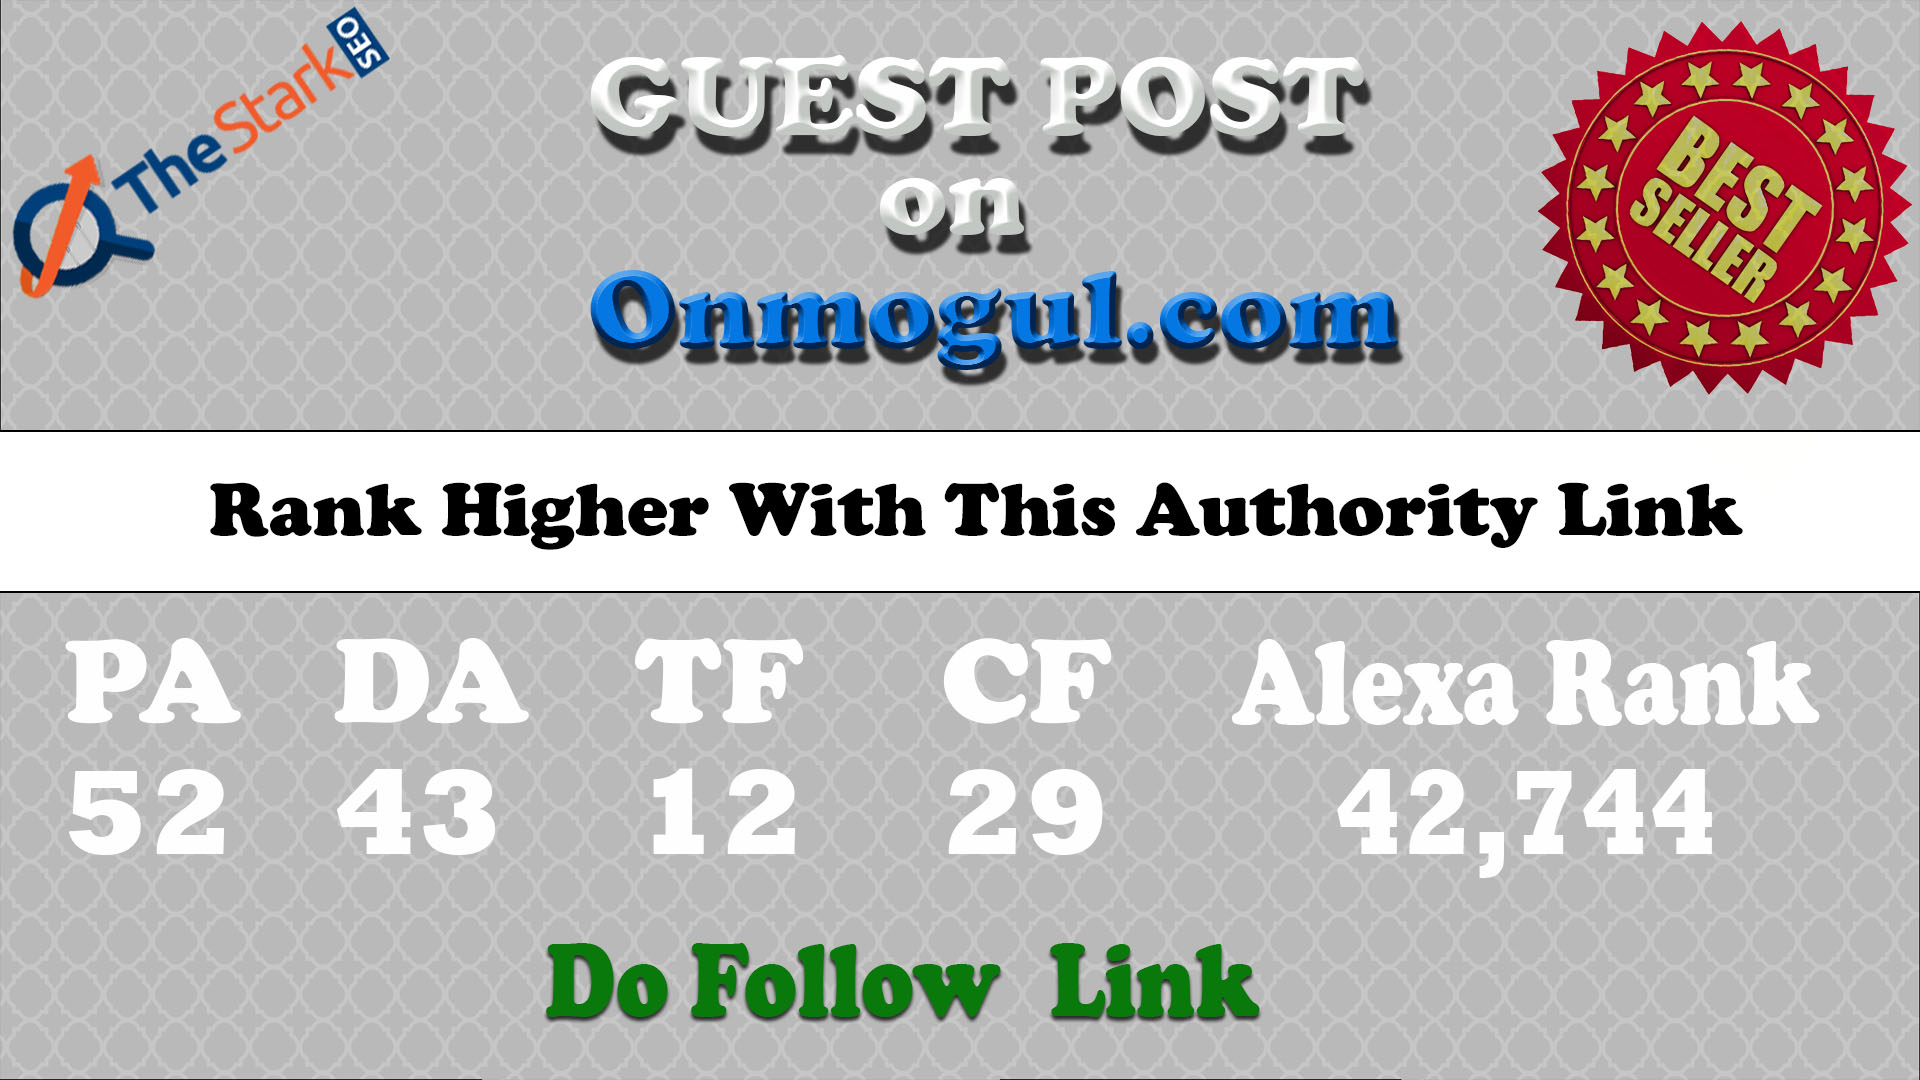 Write and Publish a Guest Post at Onmogul. com DA 43 Site Do-Follow Link